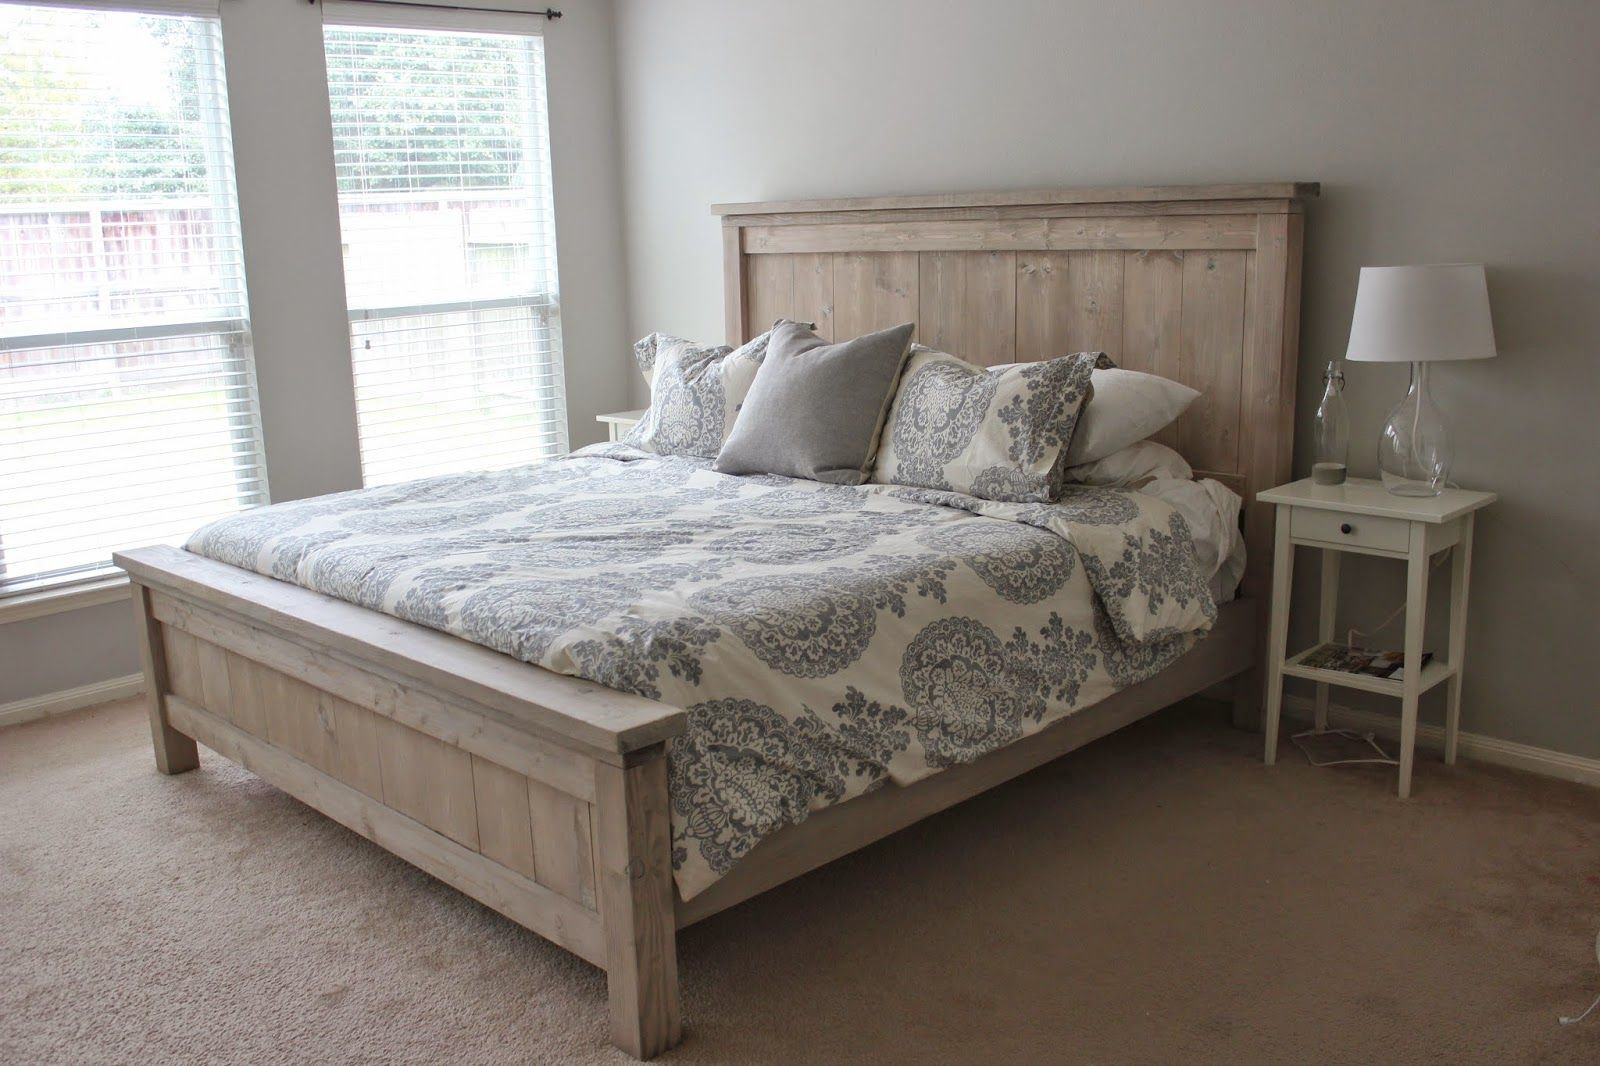 Our Diy Bed Platform Bed Designs Diy Farmhouse Bed Diy Bed